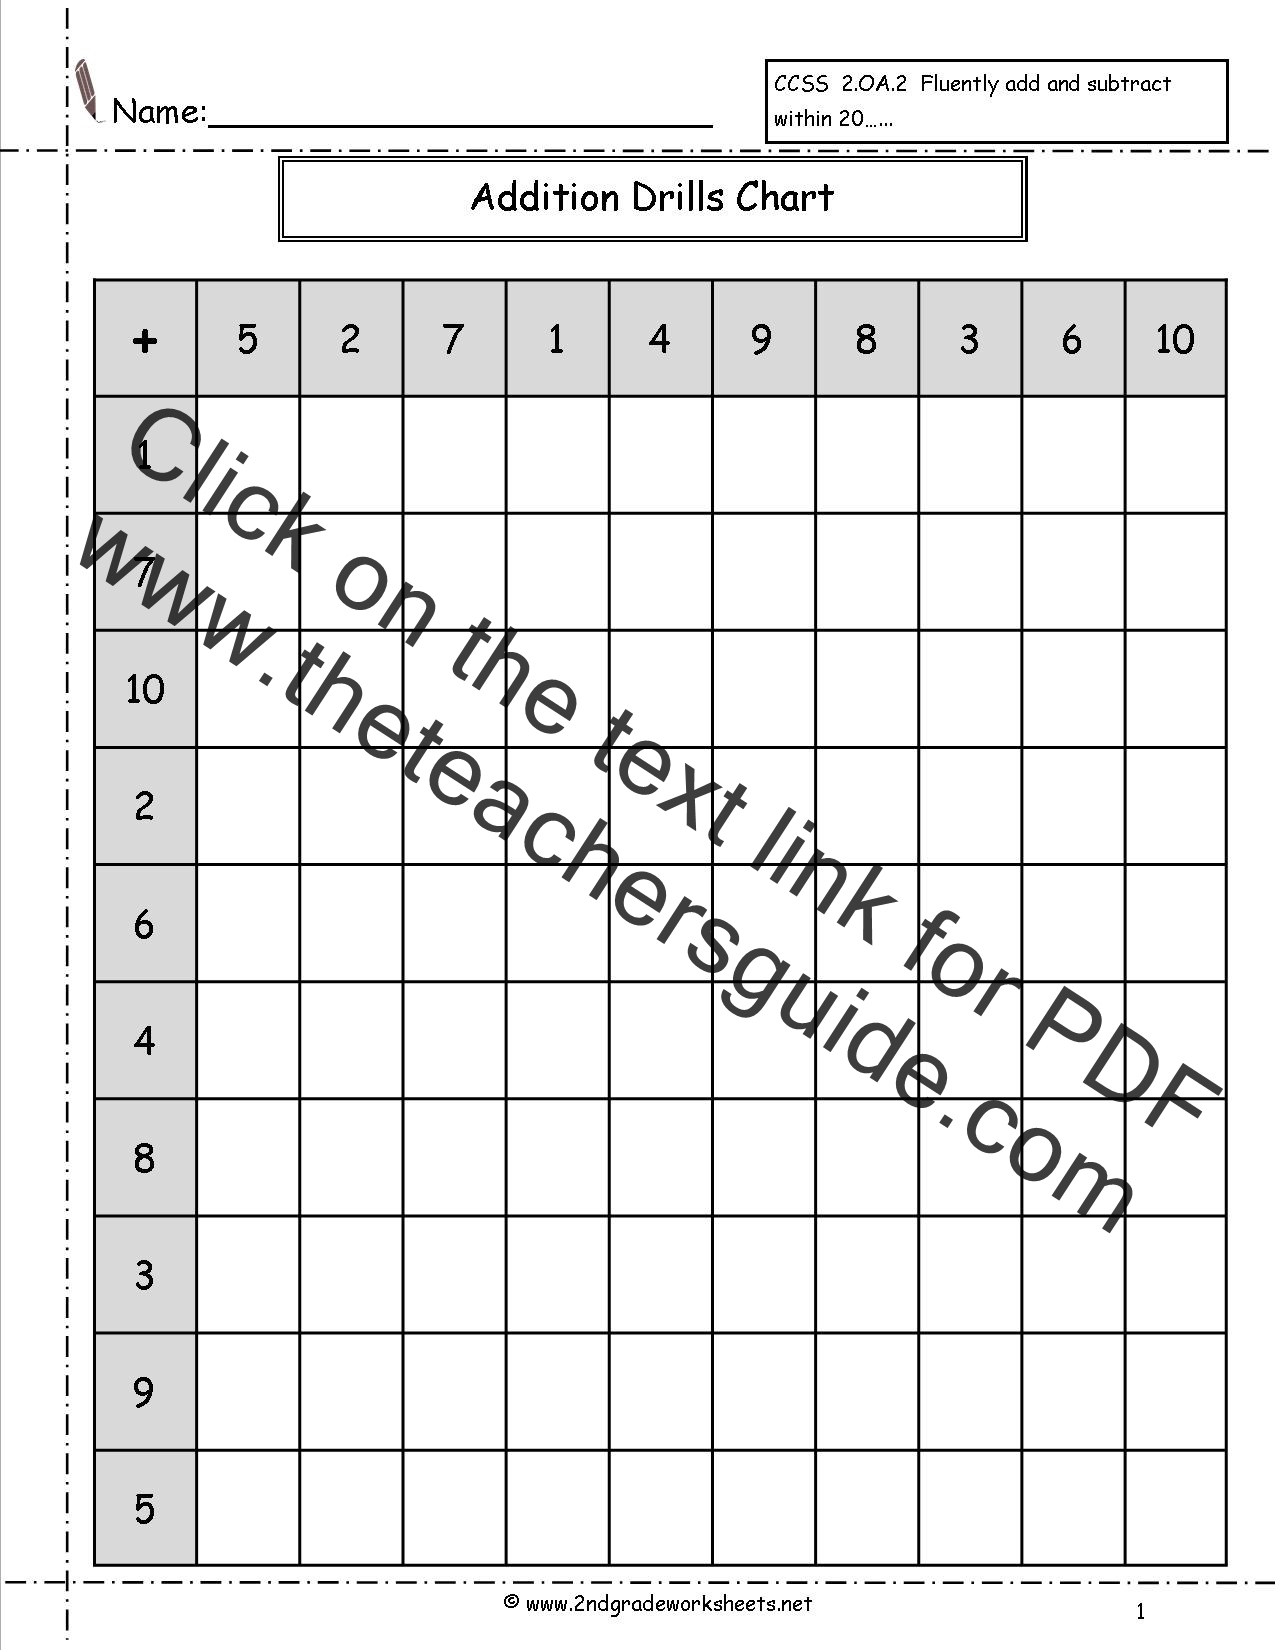 math worksheet : single digit addition fluency drills worksheets : Addition And Subtraction Drill Worksheets